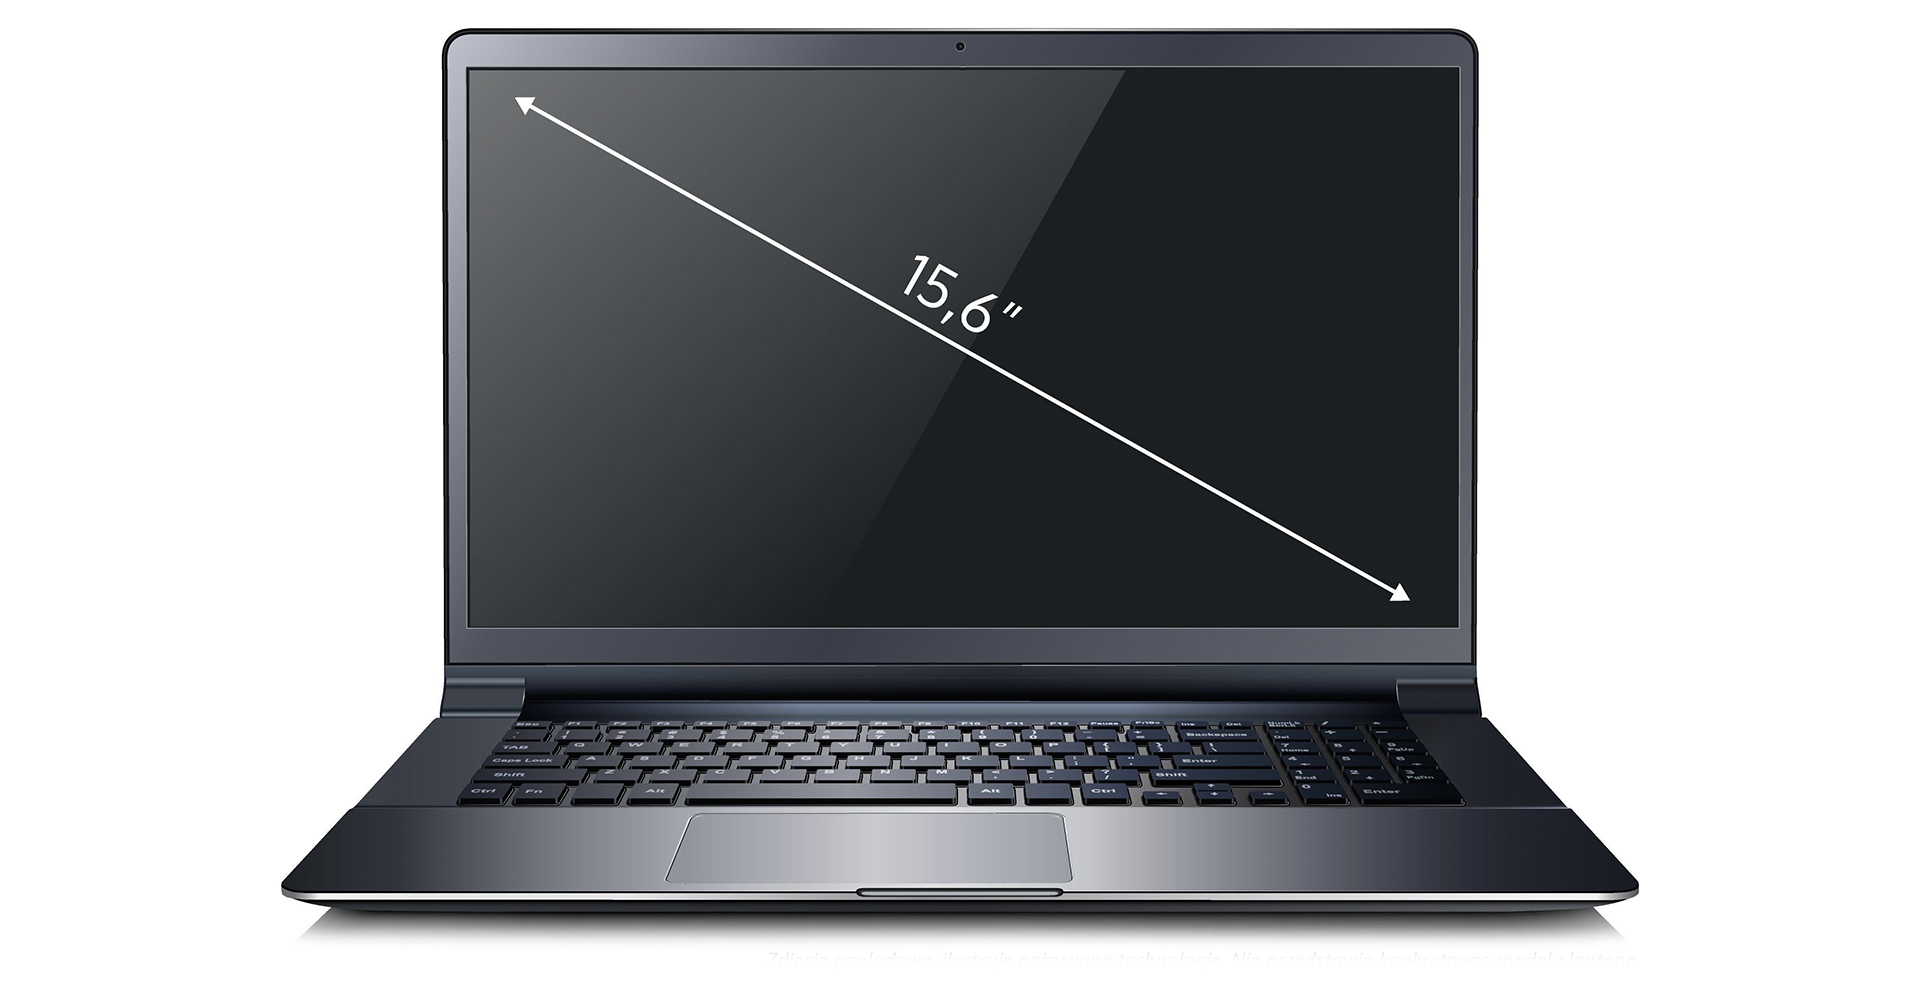 Fujitsu LifeBook A357 (S26391K425V300) 4 GB RAM/ 256 GB SSD/ 1TB HDD/ Windows 10 Pro                             15.6-tollise diagonaaliga